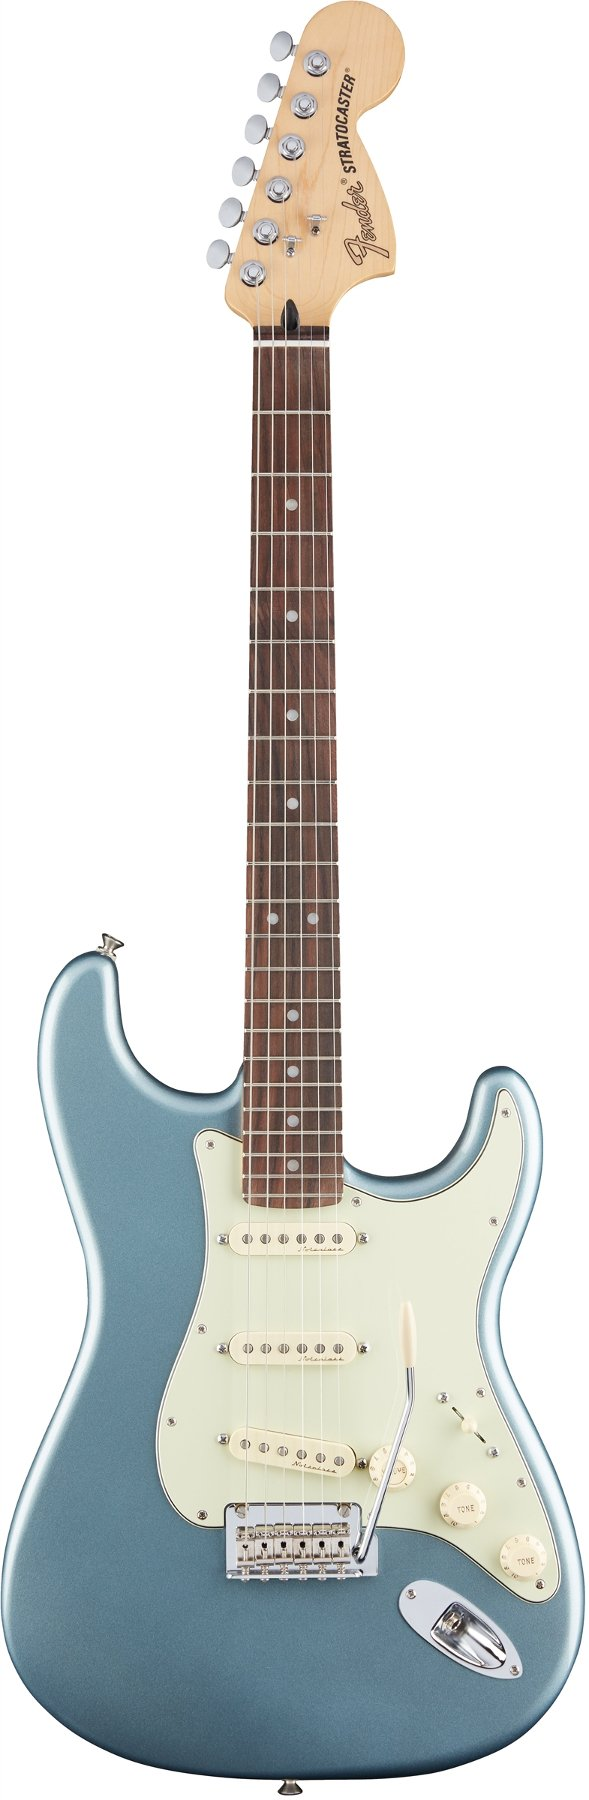 Electric Guitar with Vintage Noiseless Pickups